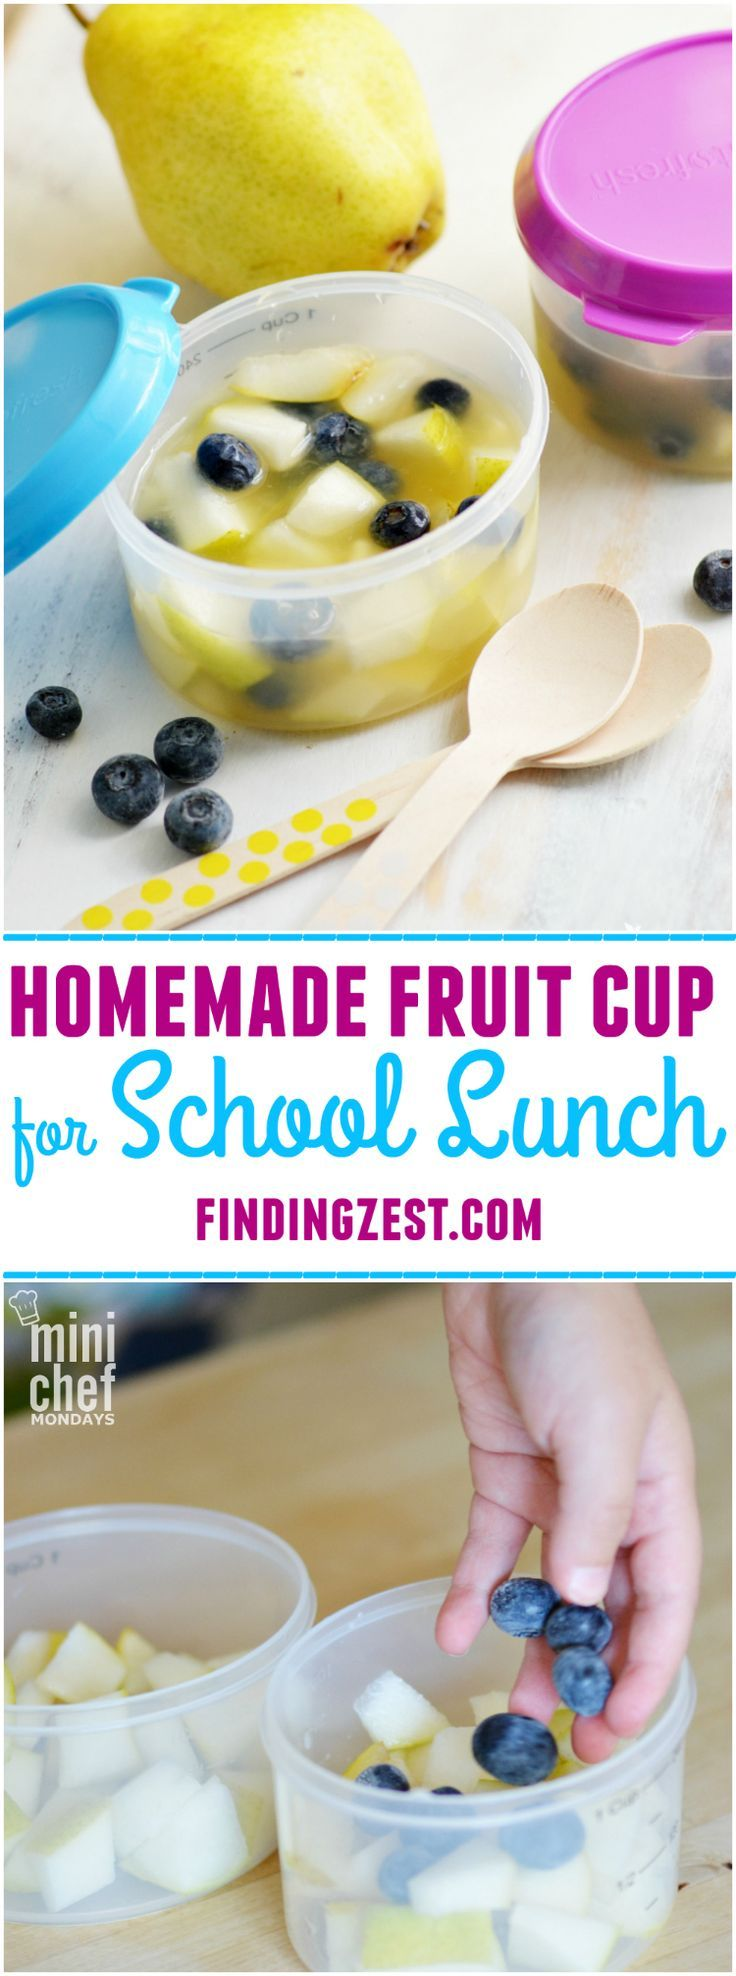 Homemade Fruit Cup for School Lunch: Send fresh fruit like pears to school with this homemade fruit cup! Prevents browning and tastes delicious! Yum.